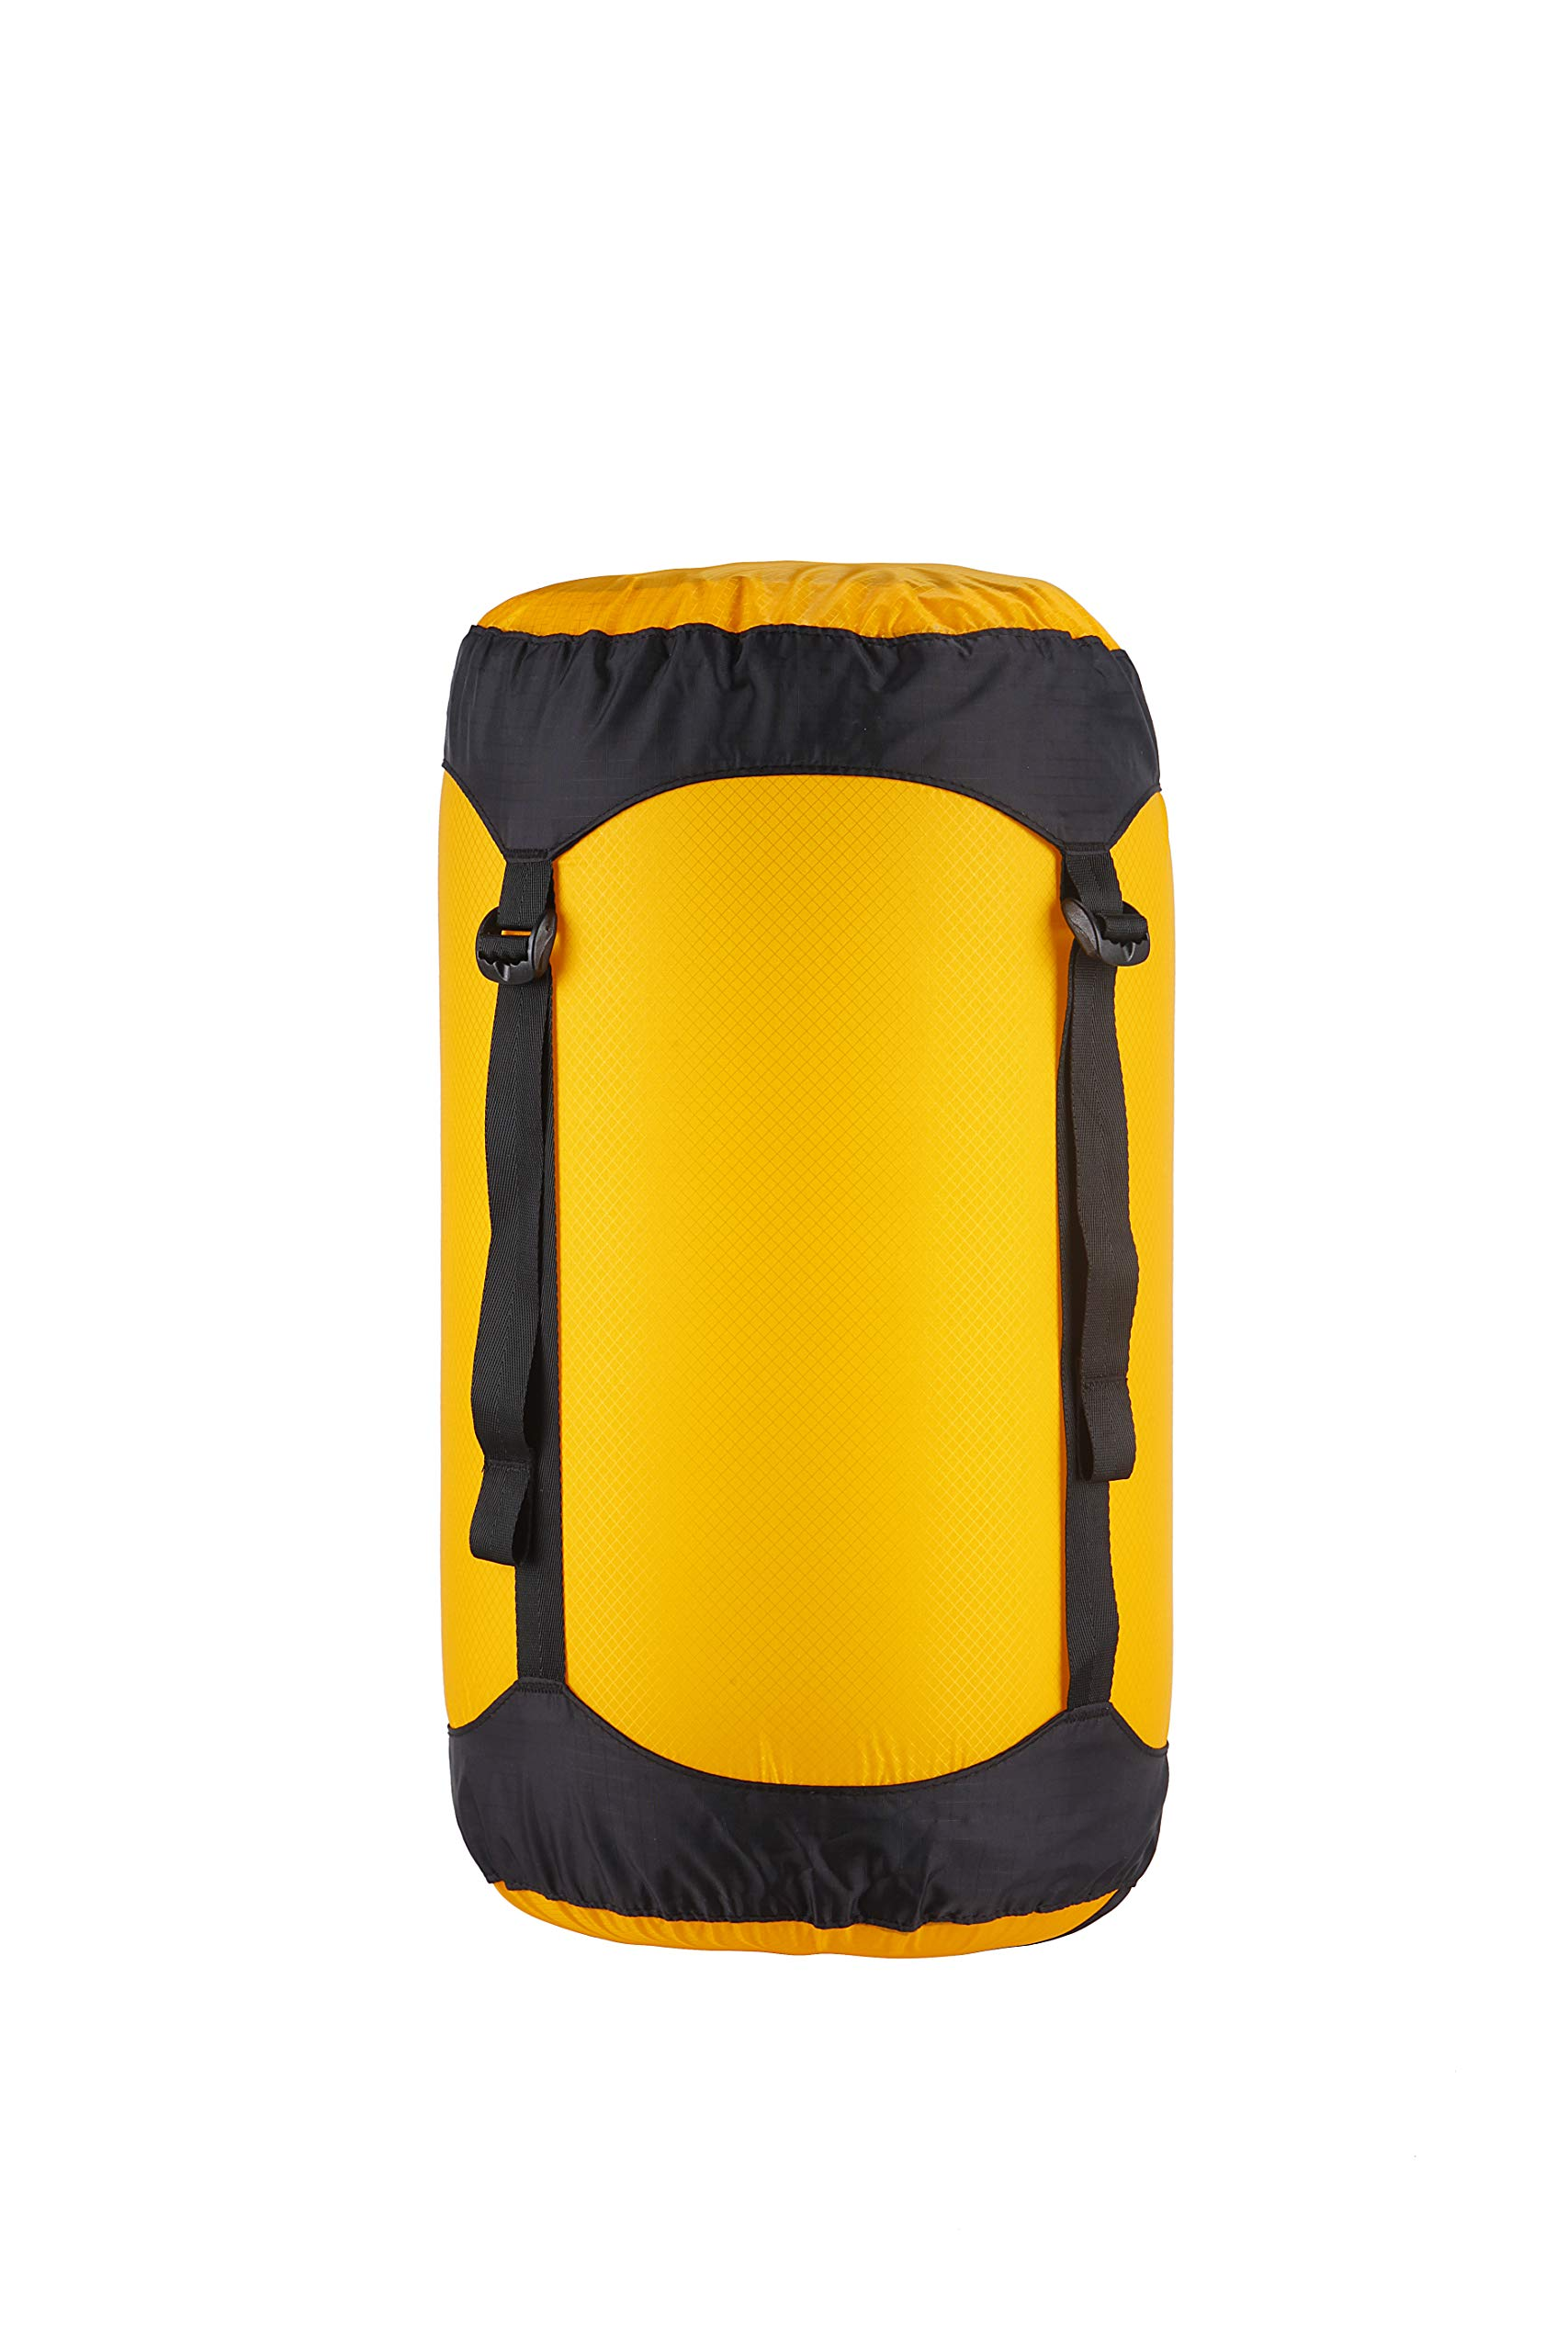 Sea to Summit Ultra-SIL Compression Sack, Yellow, 10 Liter by Sea to Summit